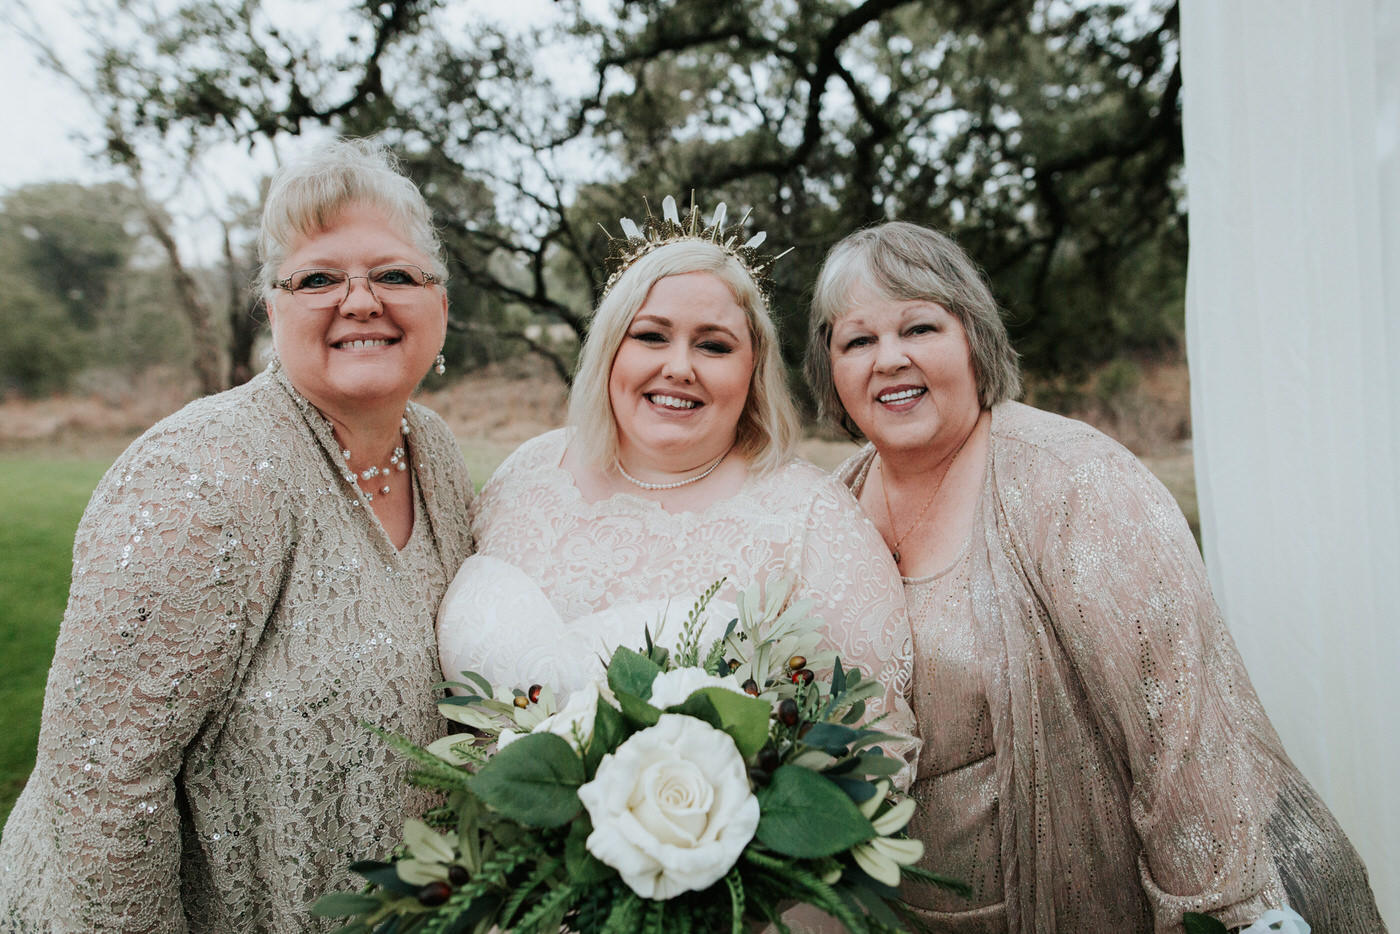 Bride with family at Austin wedding